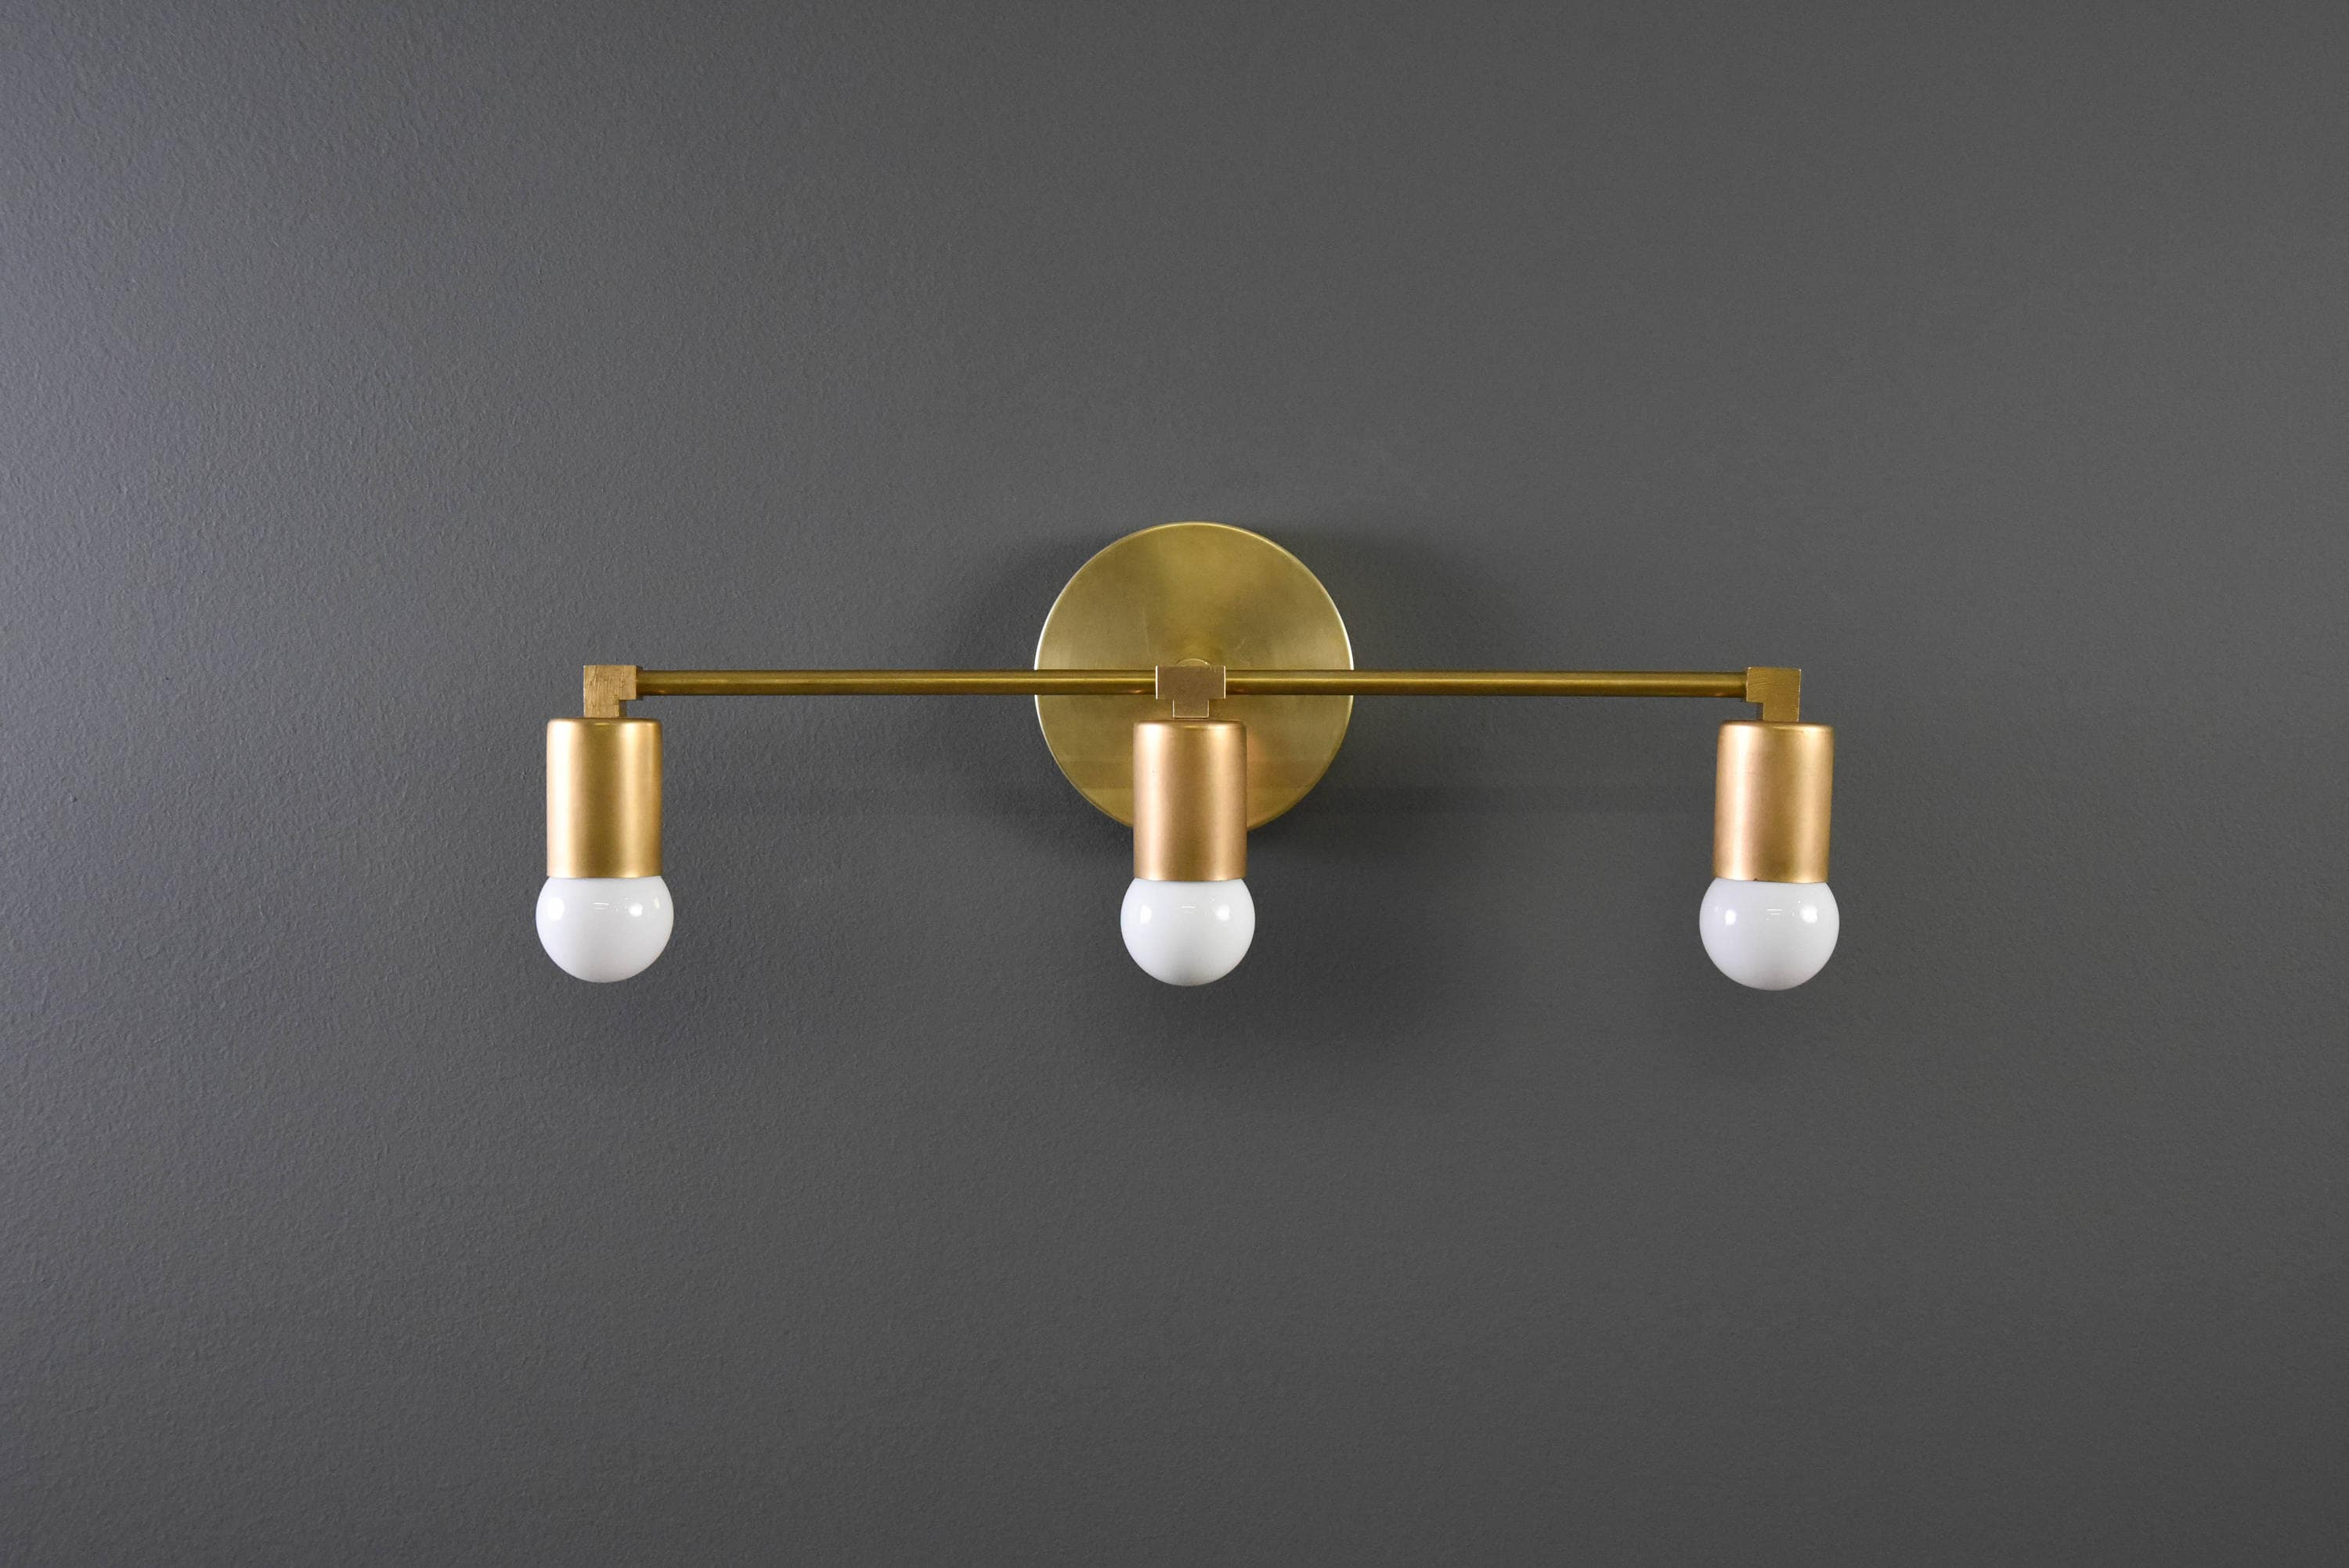 profile bulb light mounted small sconce wall one sale fixture bathroom brushed brass lights rustic nashuahistory for low of bath track amazing with two lighting the in fixtures overhead sconces contemporary modern ideas vanity side elegant